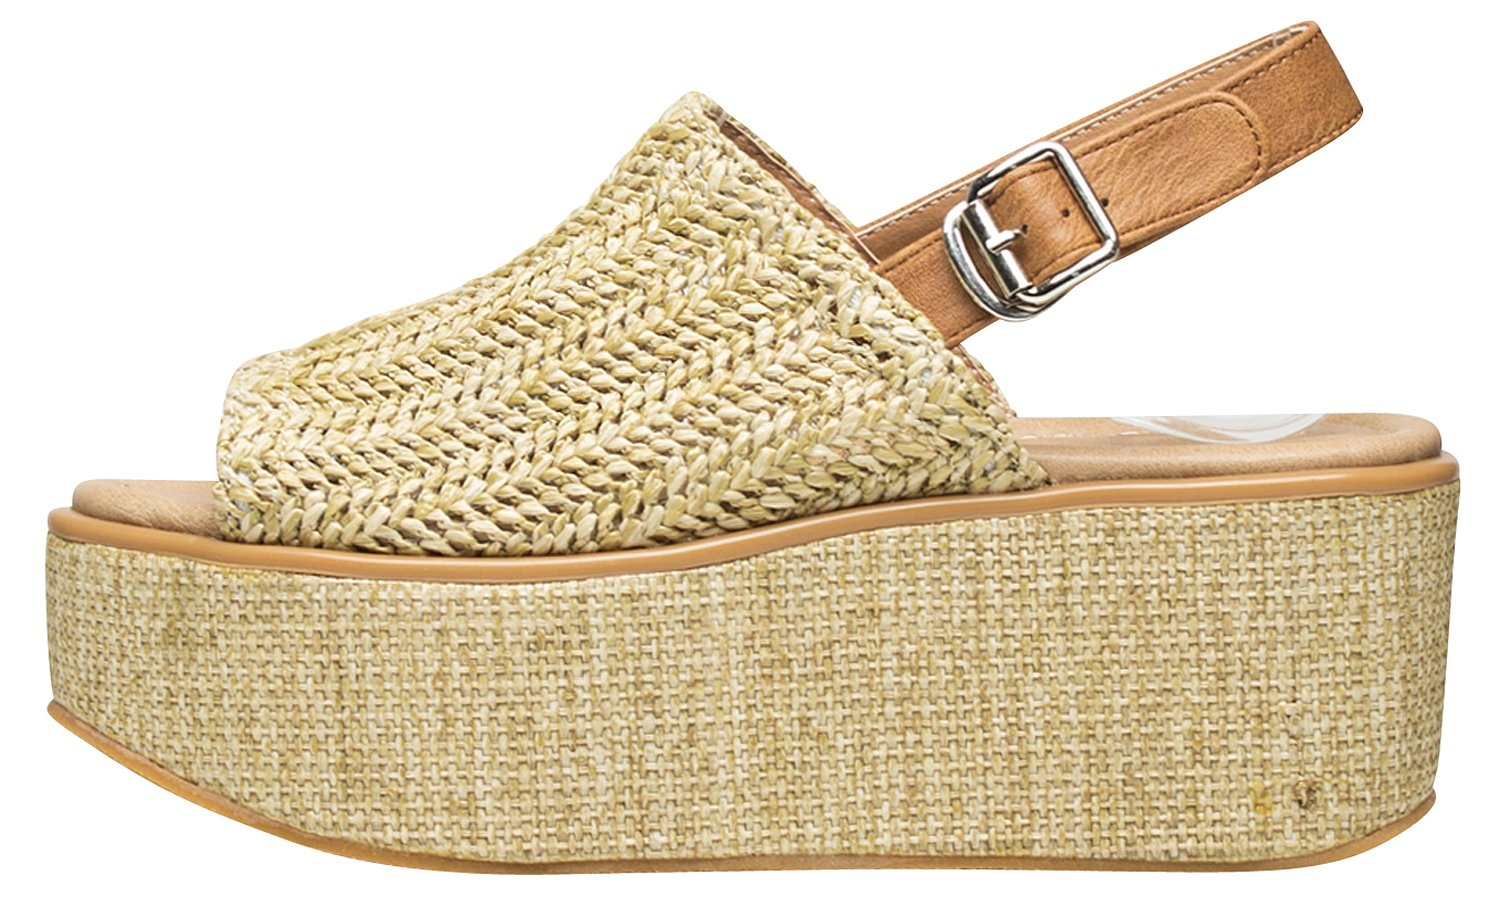 AnnaKastle Womens Natural Woven Chunky Platform Wedge Sandal Shoes B07BR85X5P 5.5 B(M) US|Beige